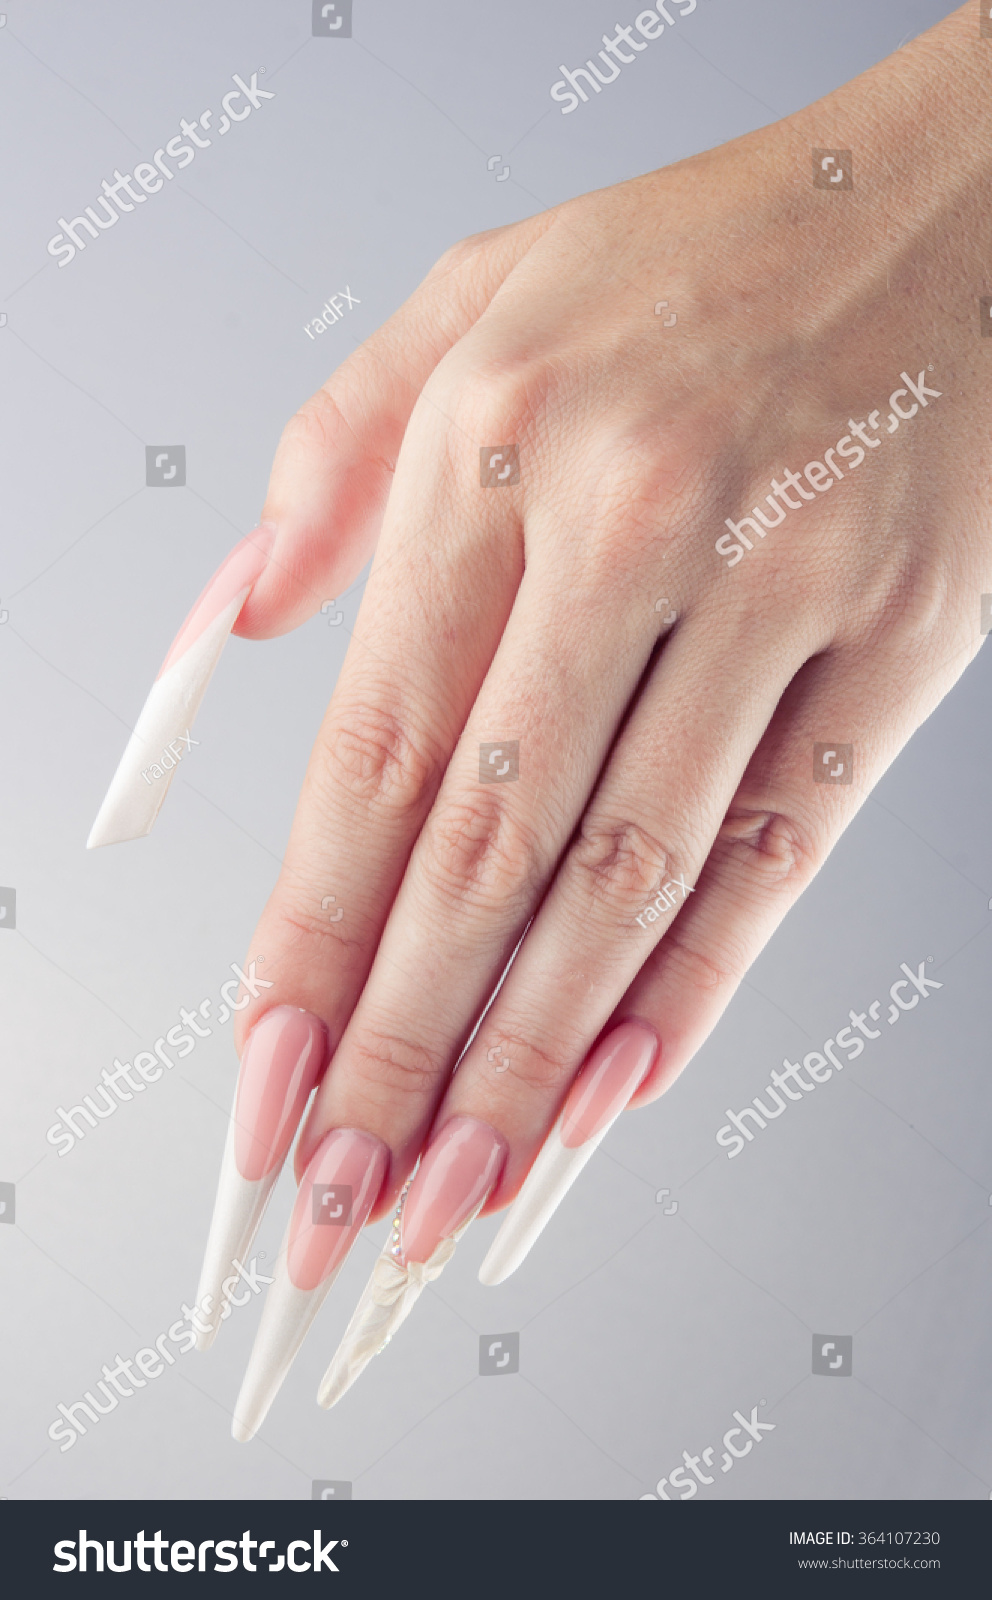 Painted Simple Extreme Long Nails Hands Stock Photo 364107230 ...